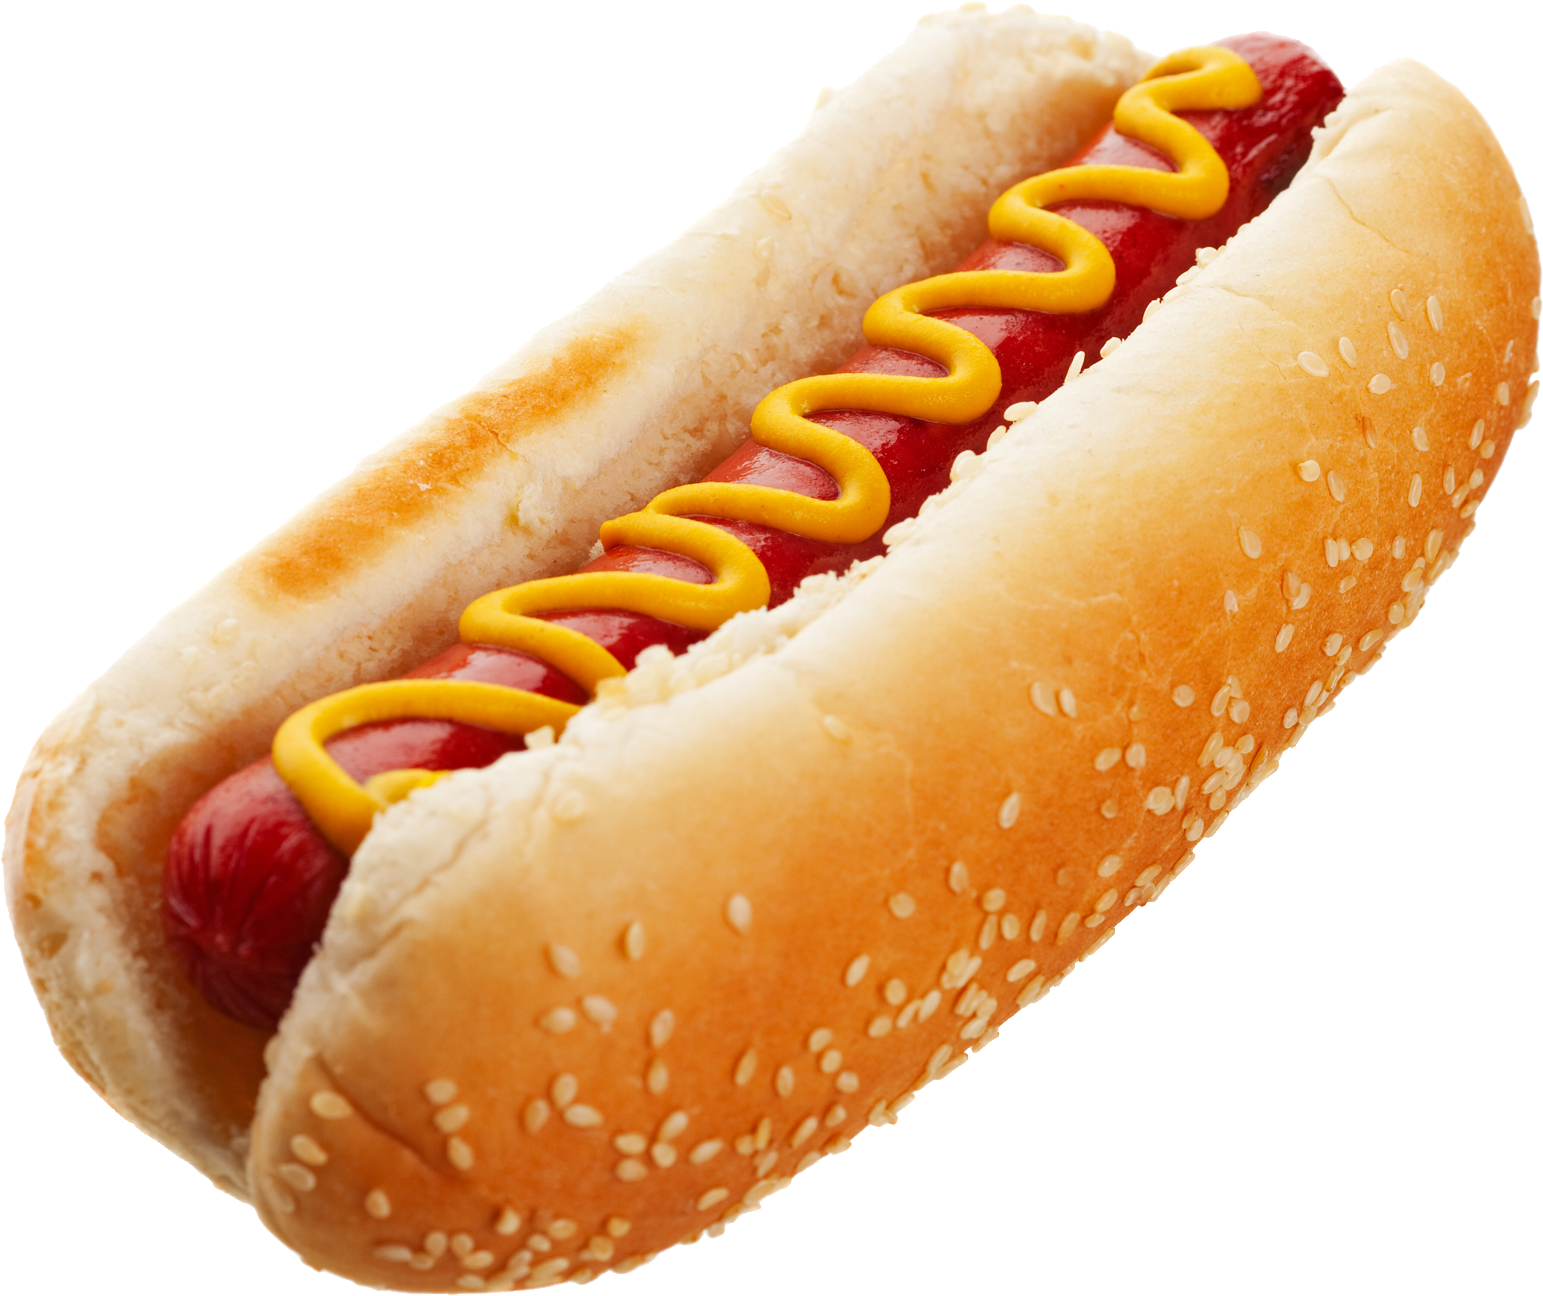 Hot dog PNG images free download.